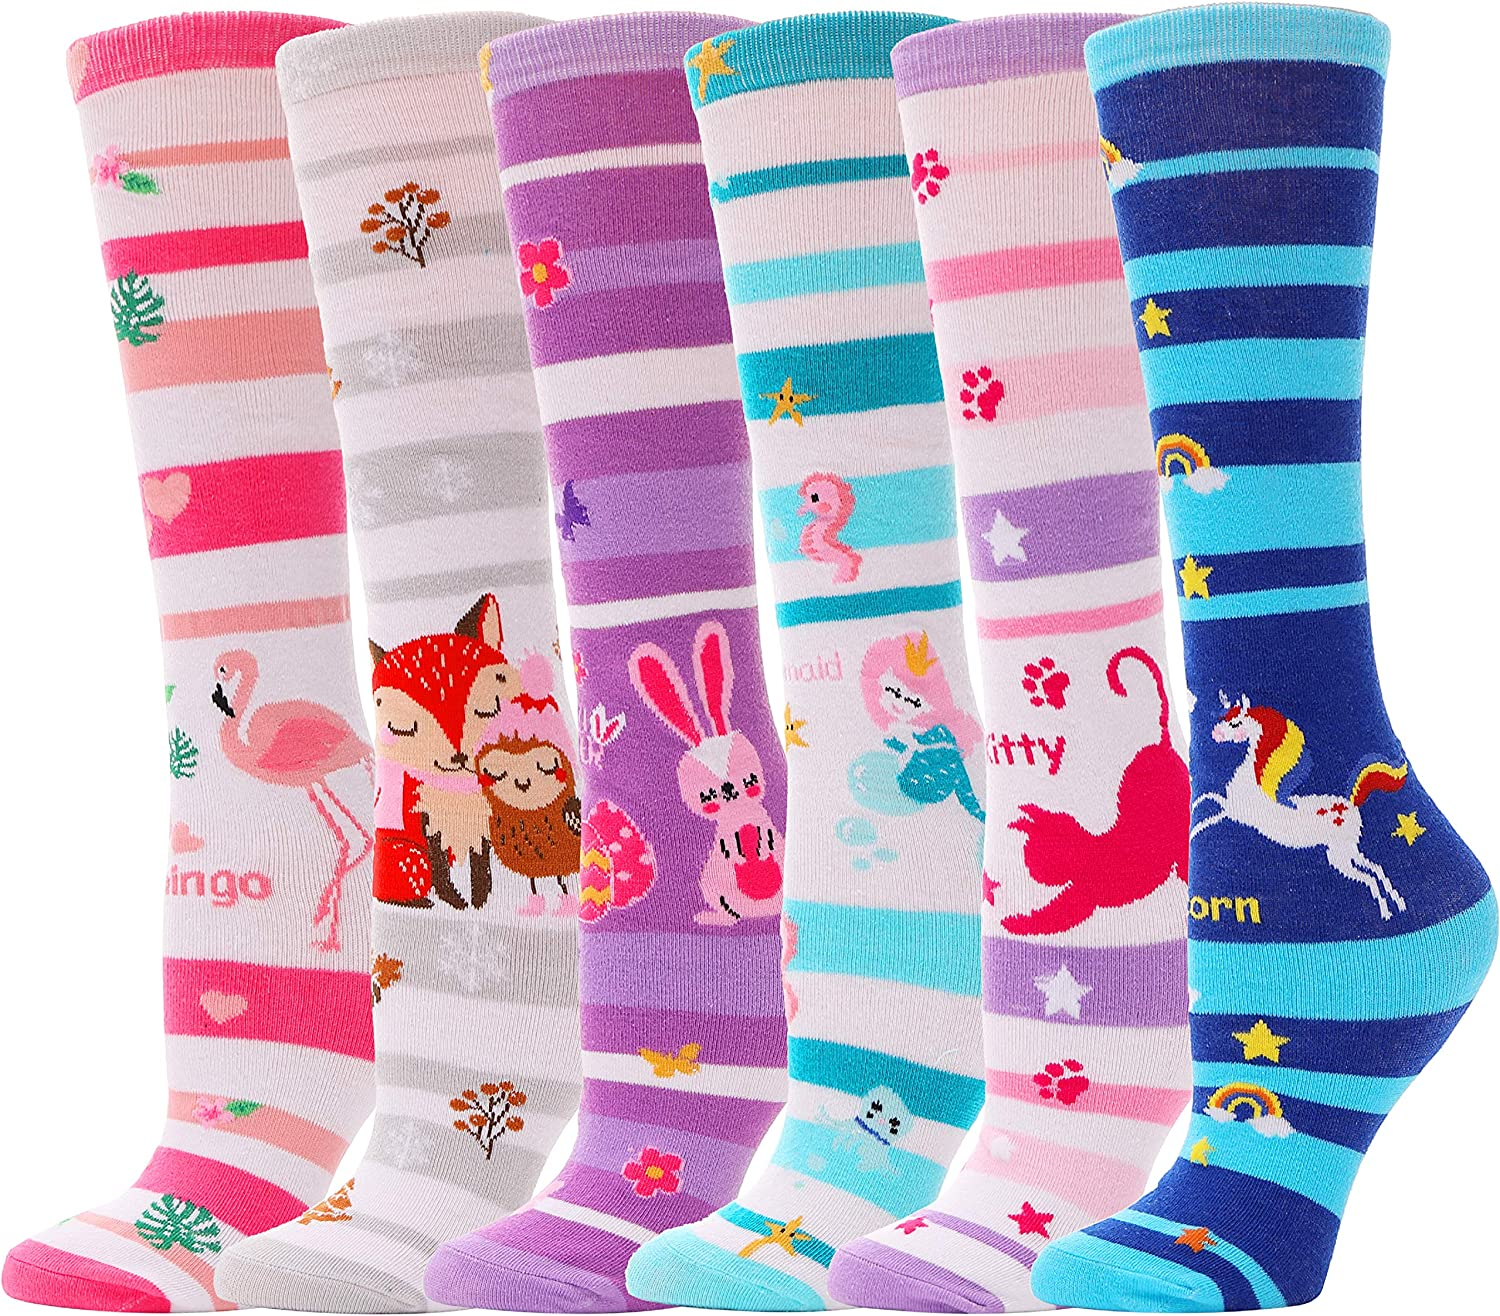 3-12 Y Girls Knee High Socks for Child 6 Pairs Boot Fun Crazy Long Tall Funny Animal Colorful Kids Socks